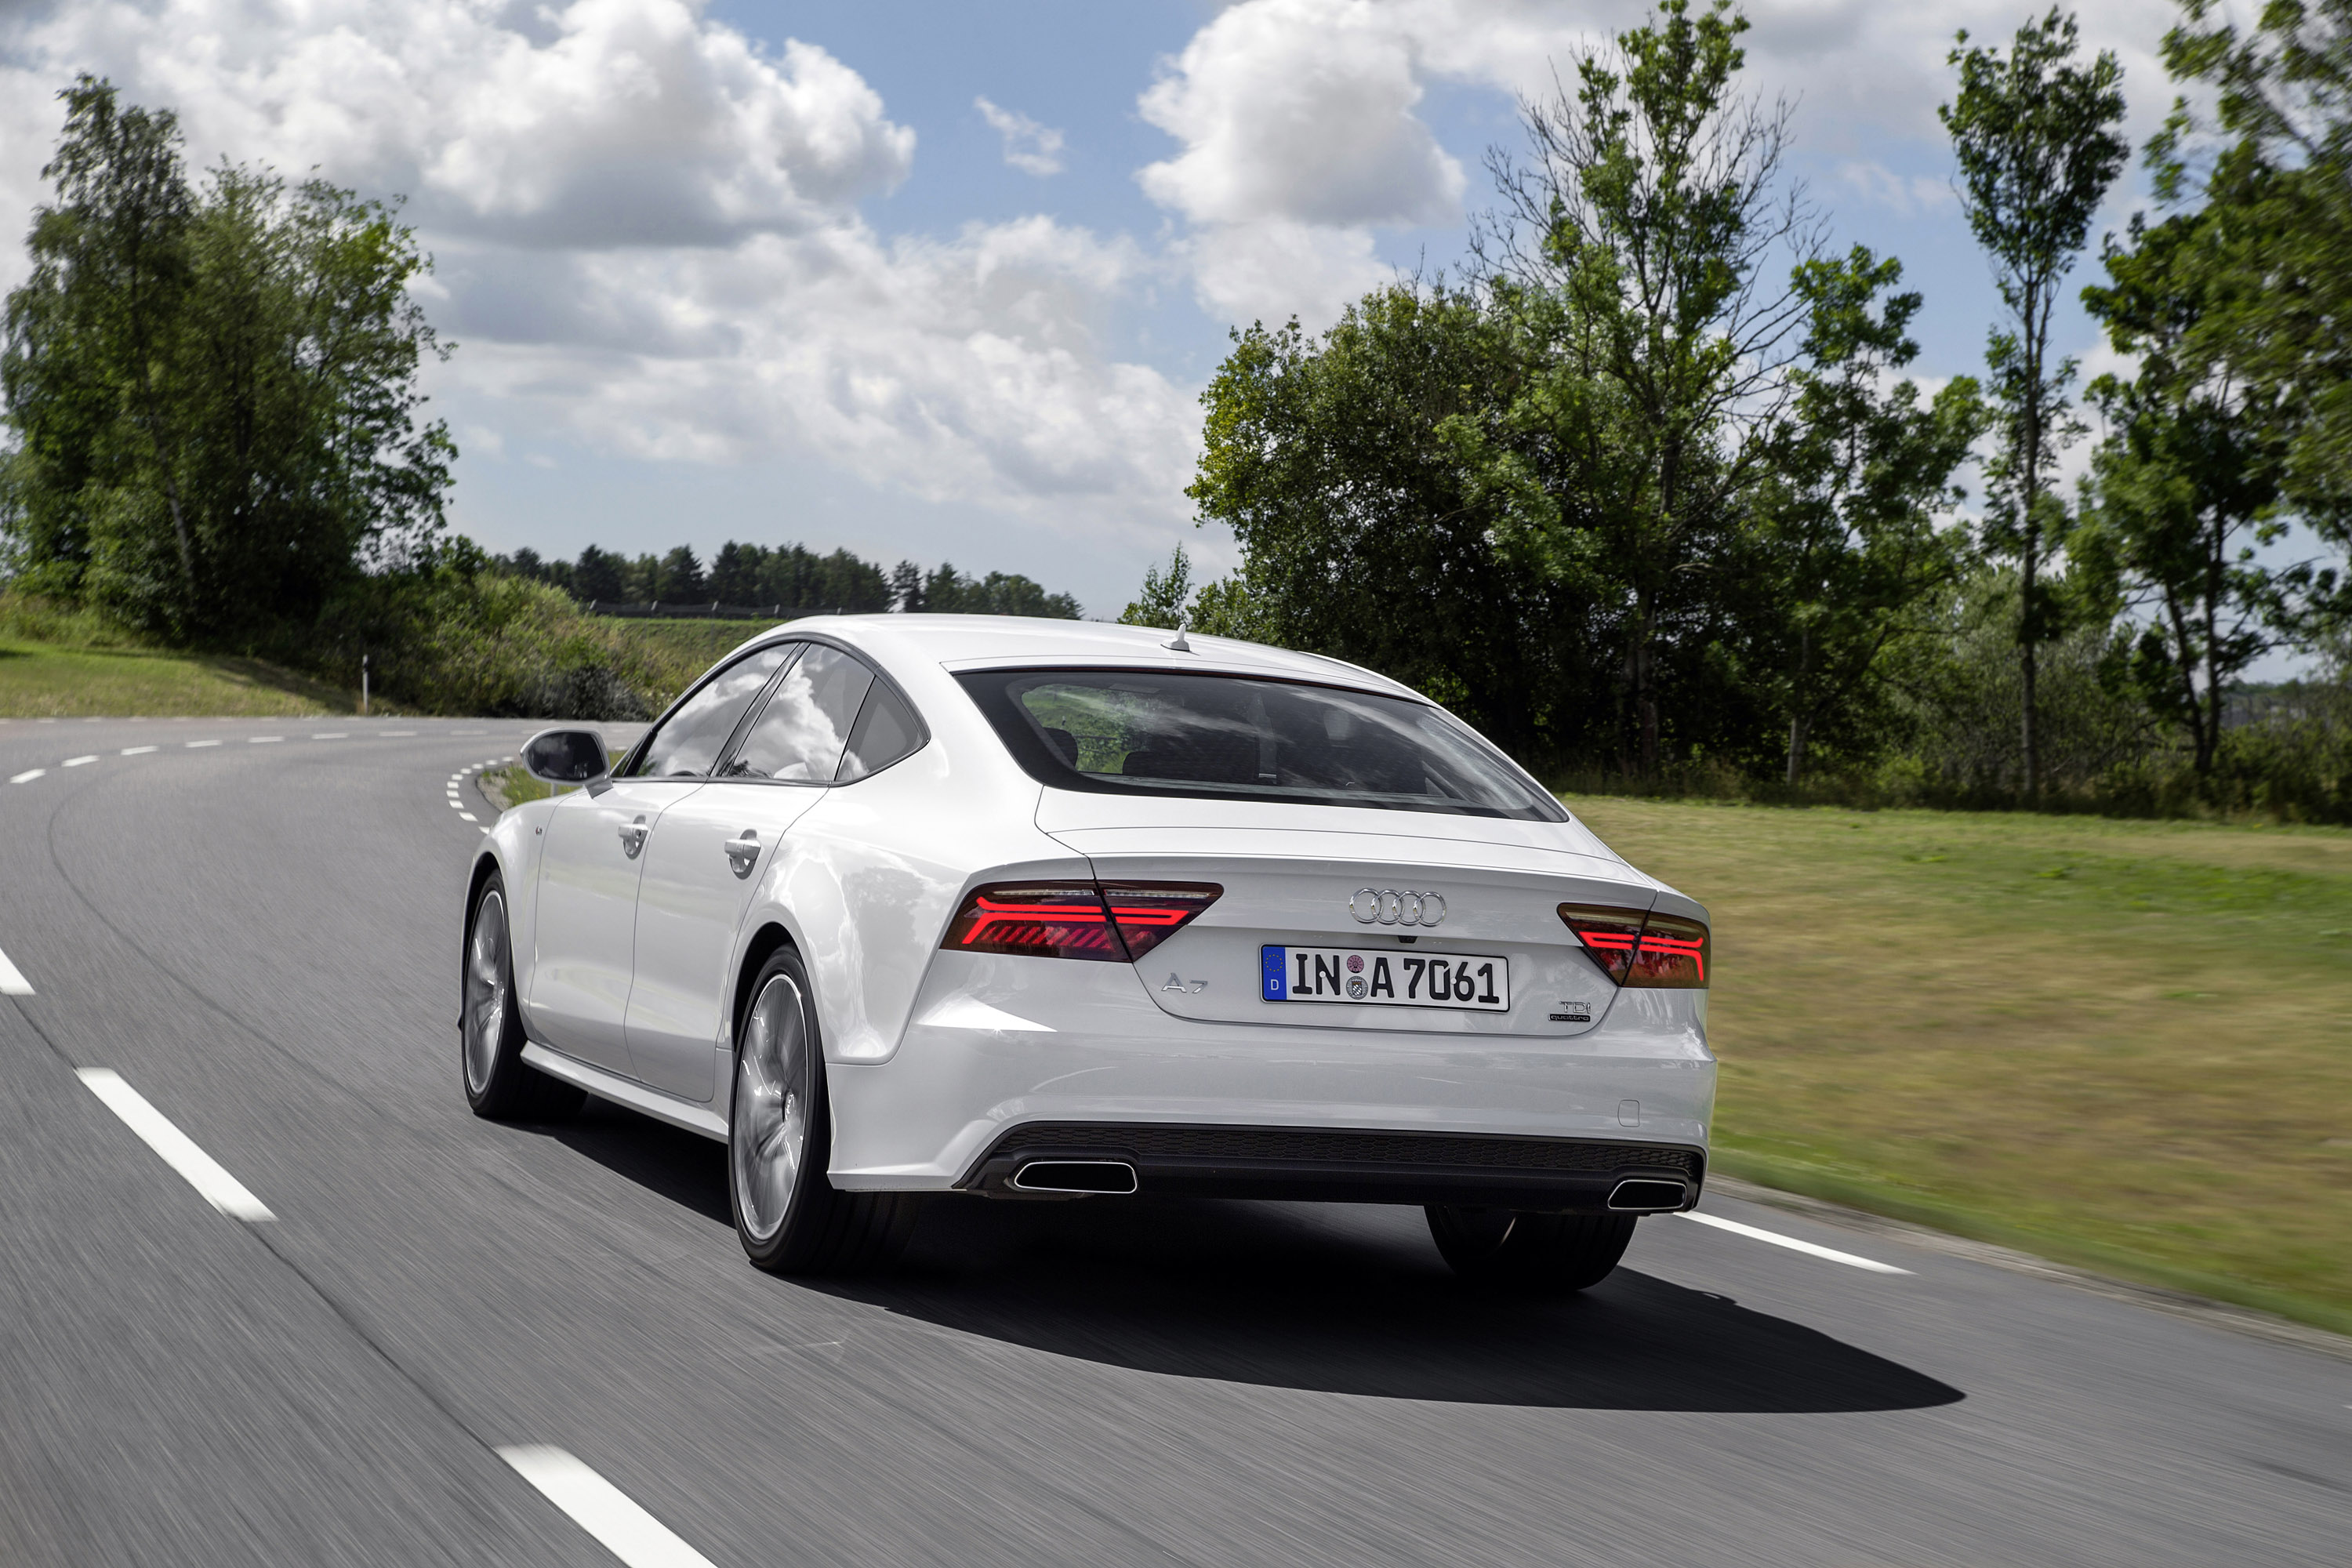 2016 audi a7 white. 2016 audi a7 and s7european versions white e